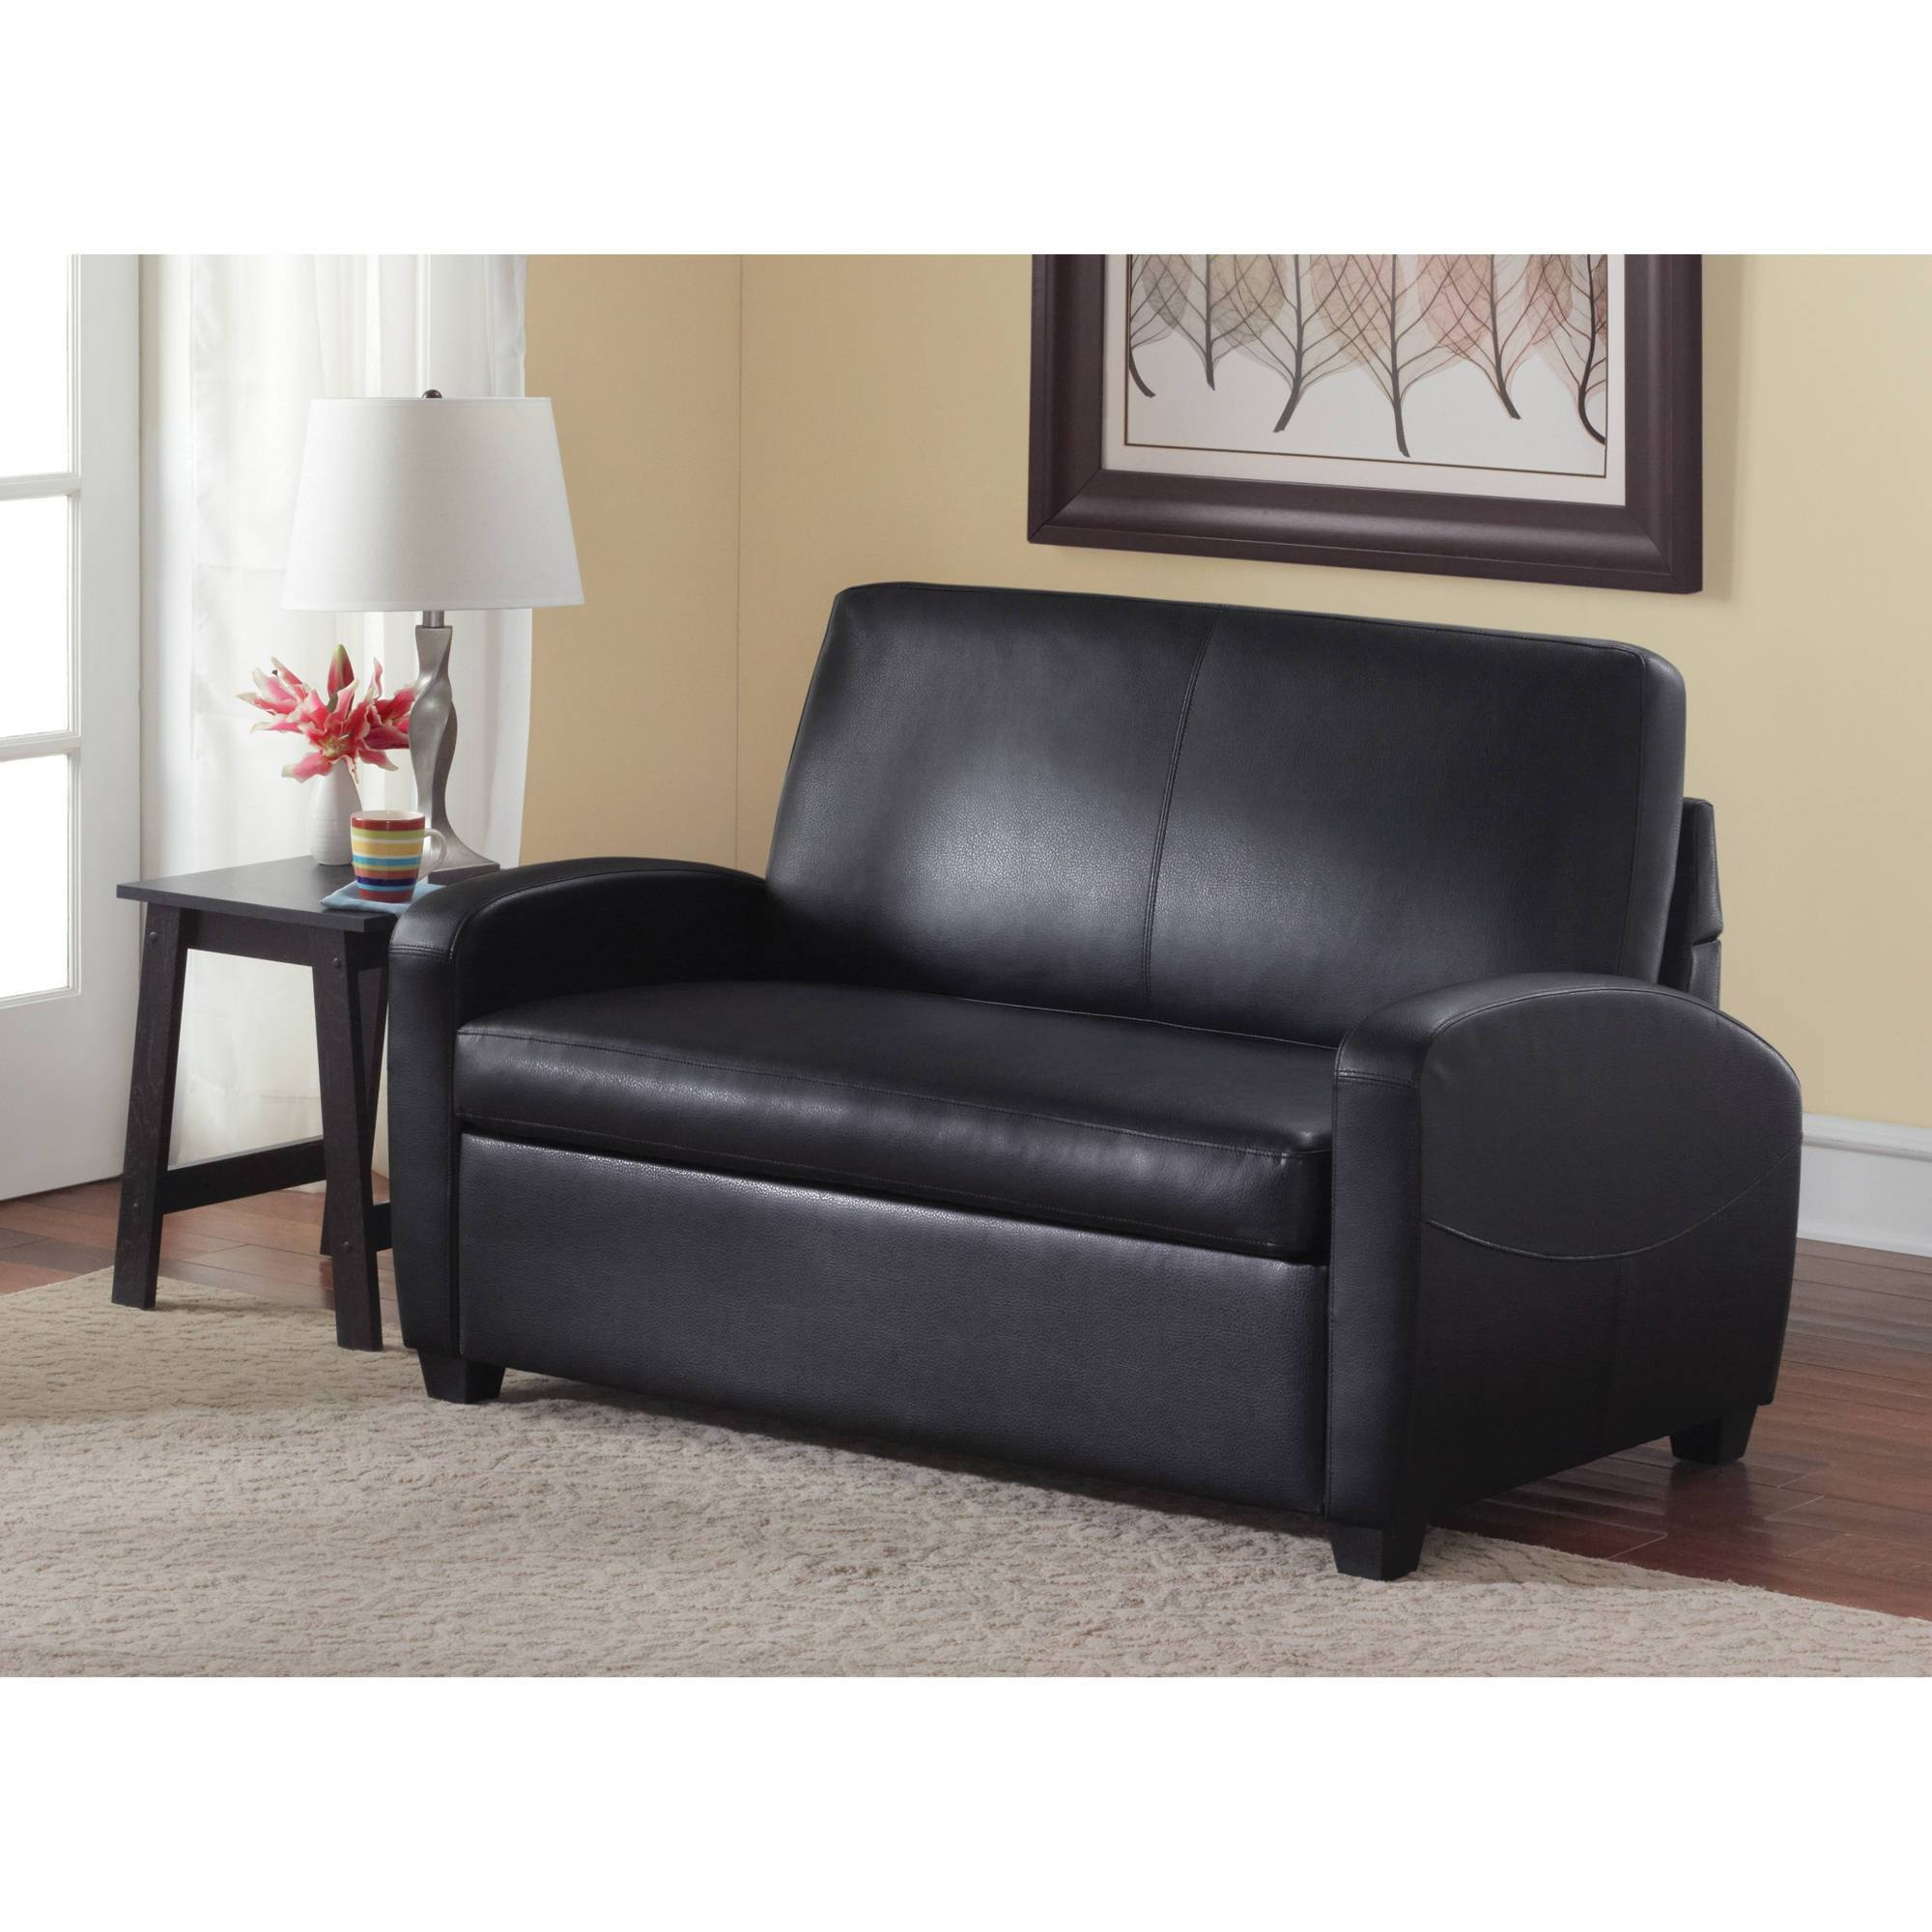 Mainstays Sofa Sleeper, Black - Walmart within Faux Leather Sleeper Sofas (Image 13 of 15)